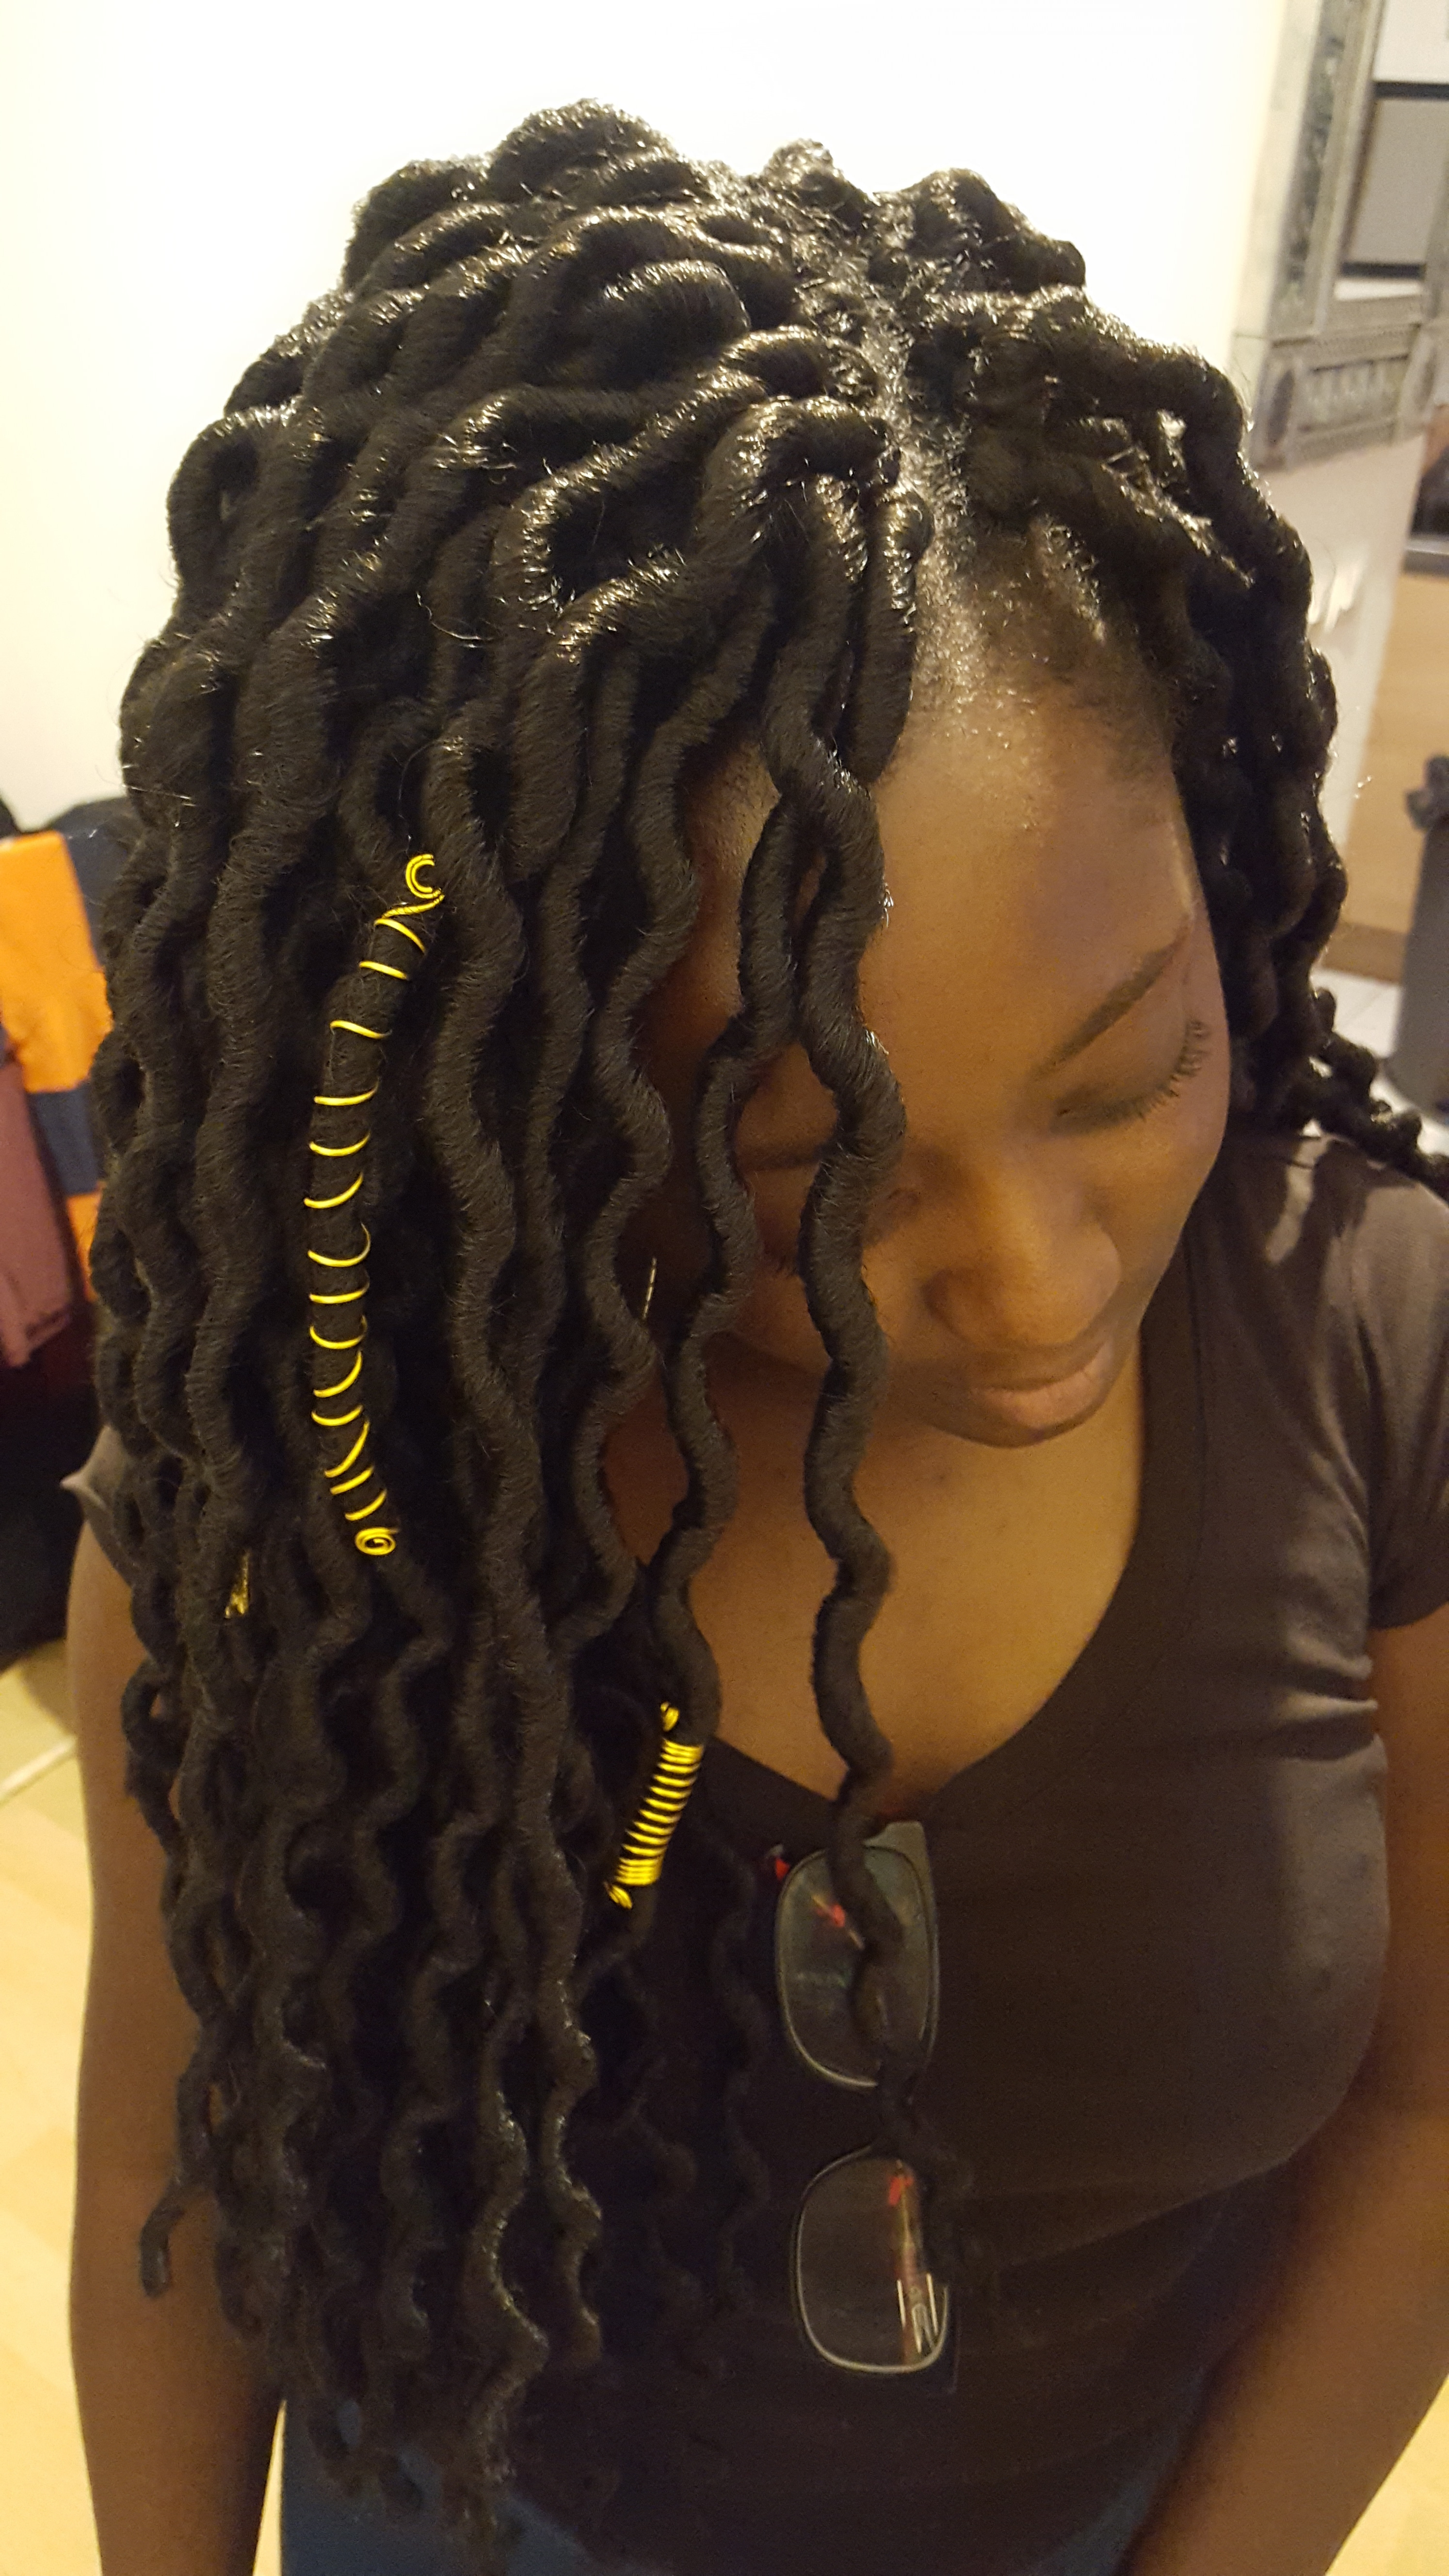 salon de coiffure afro tresse tresses box braids crochet braids vanilles tissages paris 75 77 78 91 92 93 94 95 CSYRKFNN